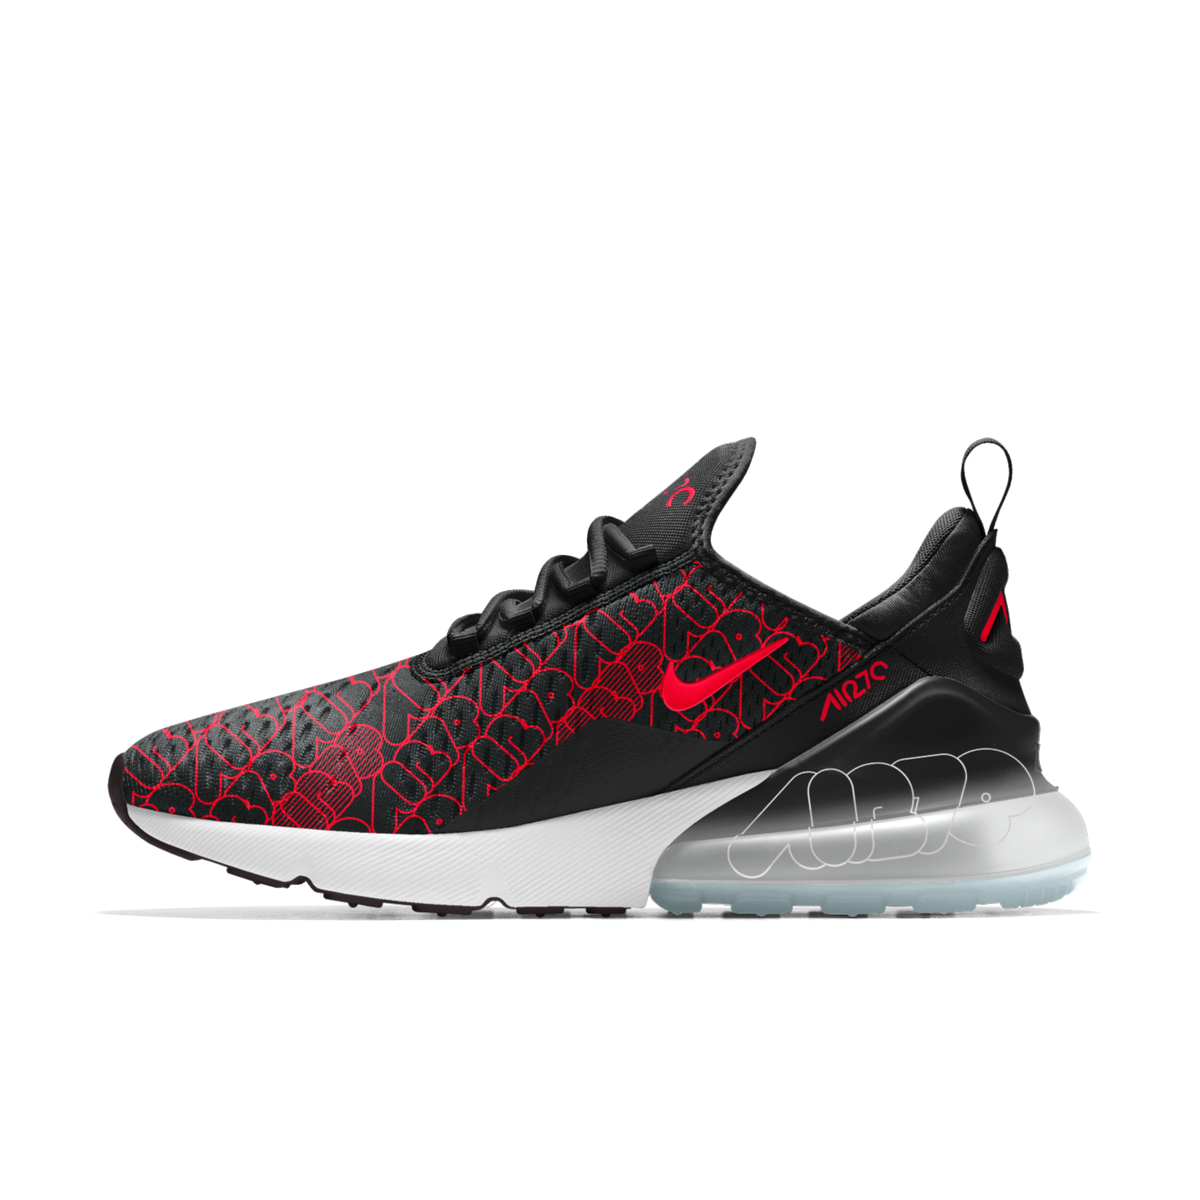 timeless design 83646 8526d Nike Air Max 270 Premium iD is now available for customization     http   bit.ly 2ueBkfA pic.twitter.com jiqSwvuV7F